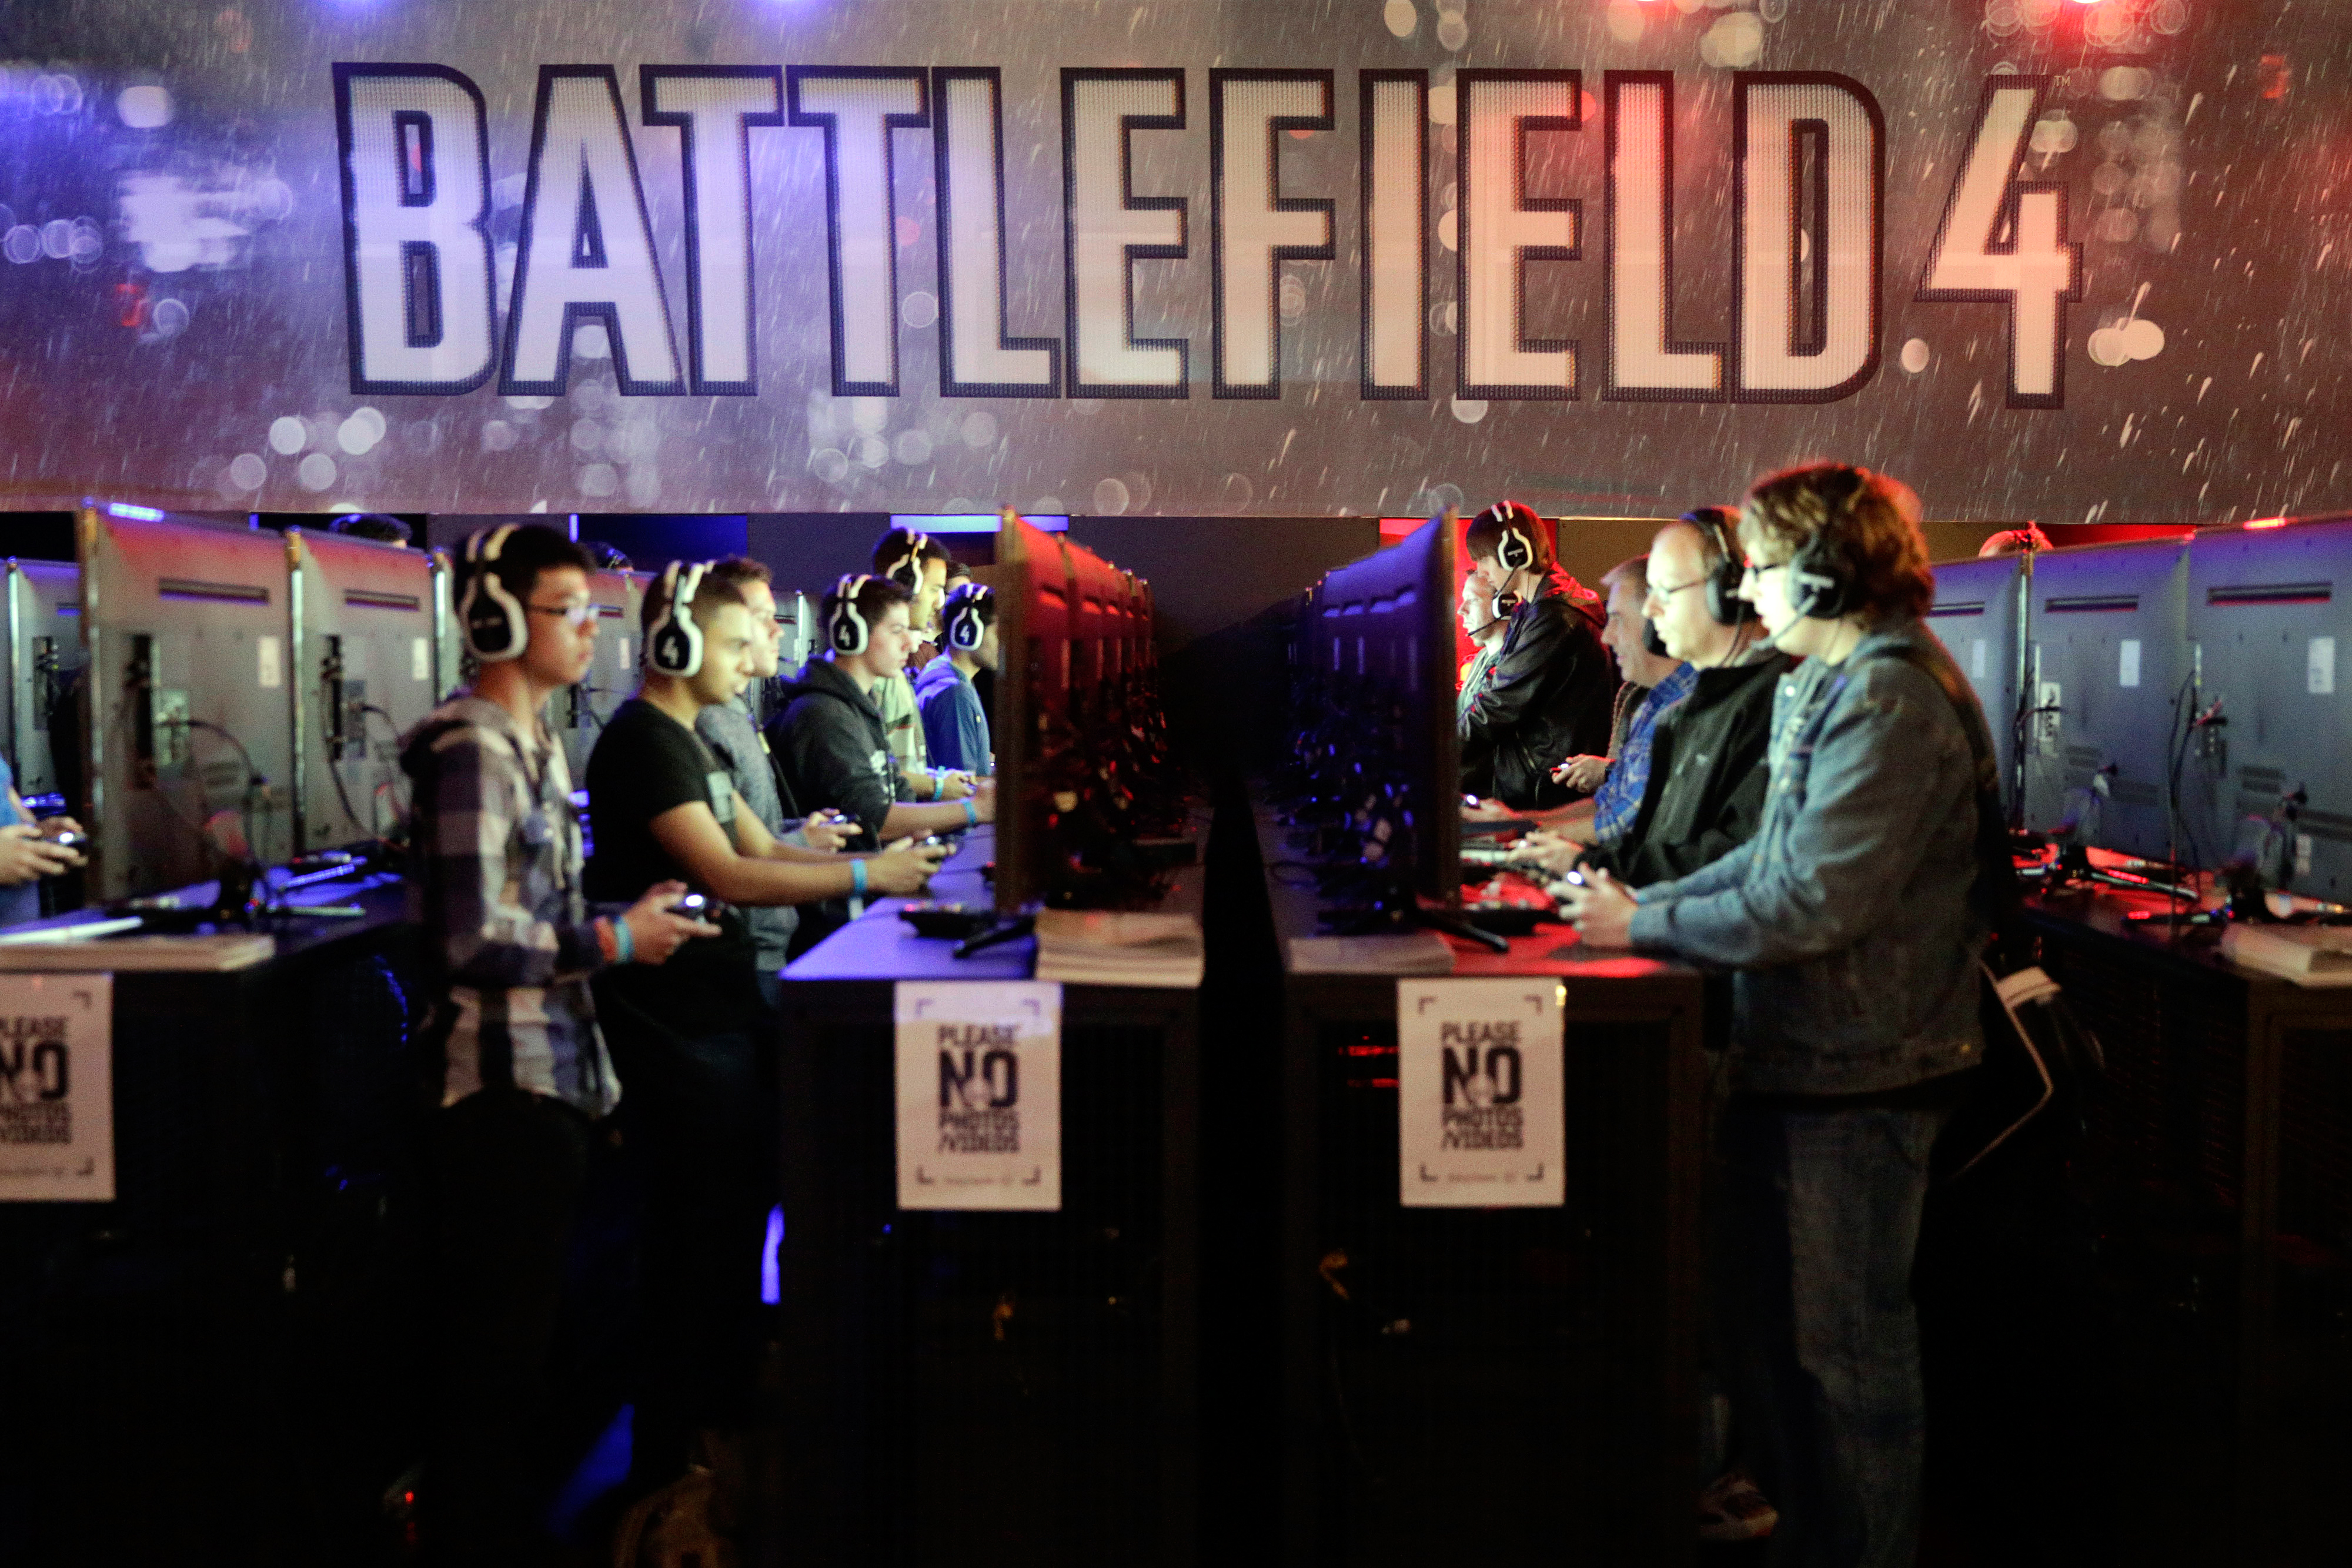 Gamers wear headsets as they play Electronic Arts Inc.'s  Battlefield 4  video game on Microsoft Corp. Xbox One games consoles.